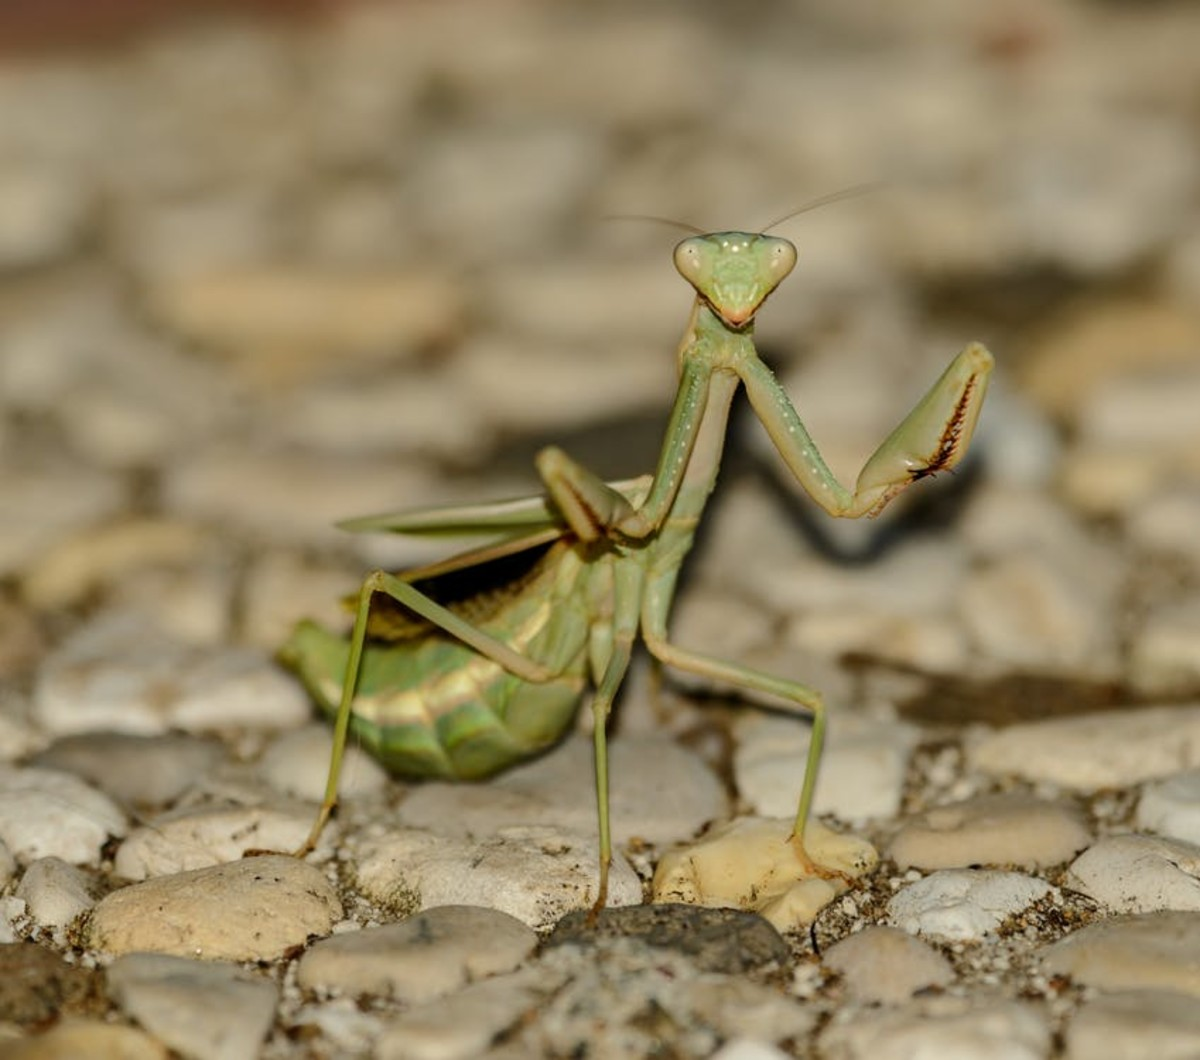 The praying mantis does have a playful side.